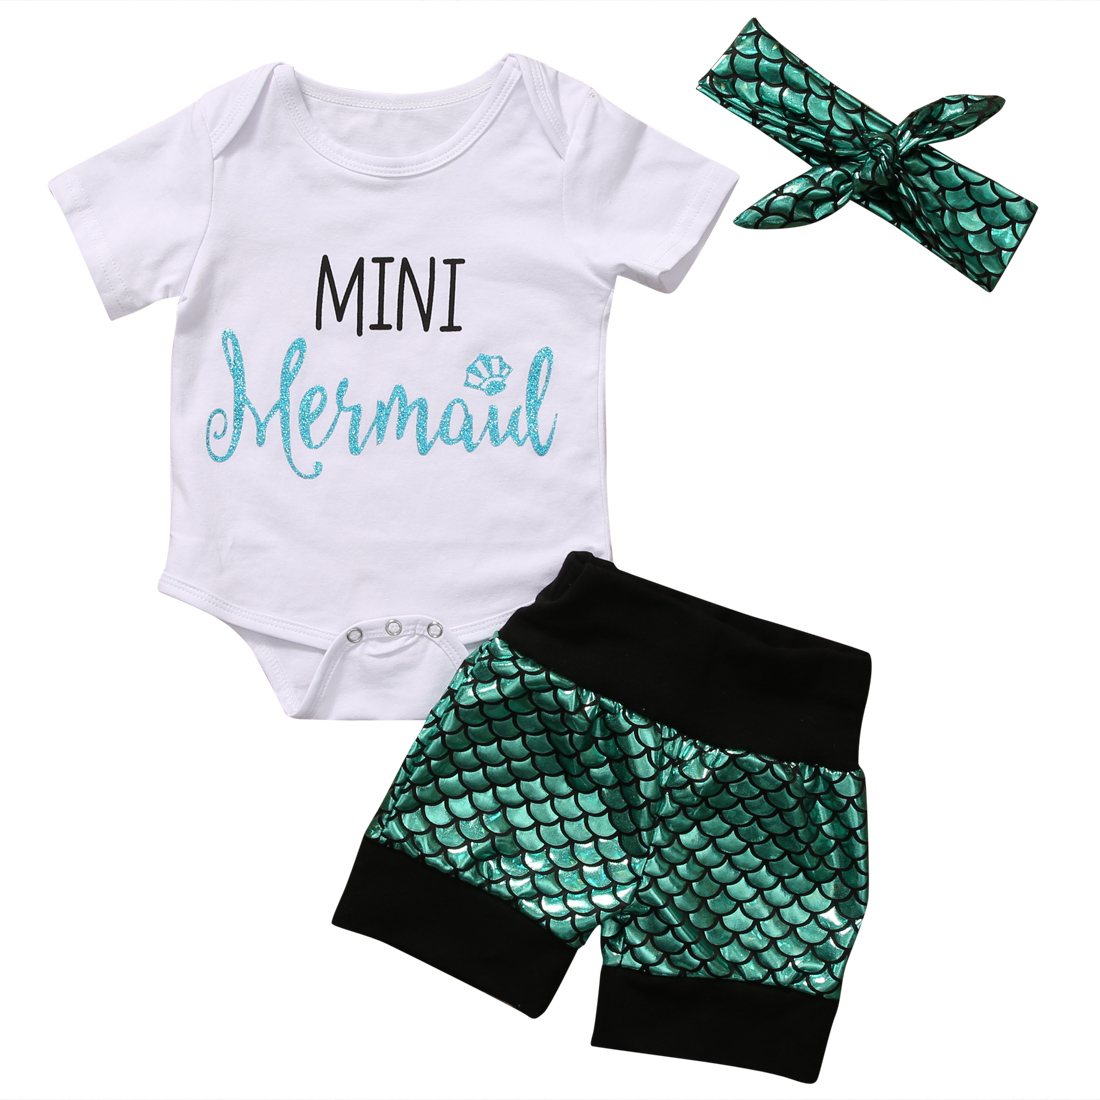 3PCS Mini Mermaid Newborn Baby Girl Clothes 2017 Summer Short Sleeve Cotton Romper Bodysuit+Sea-Maid Bottom Outfit Clothing Set 2017 newborn baby boy girl clothes floral infant bebes romper bodysuit and bloomers bottom 2pcs outfit bebek giyim clothing